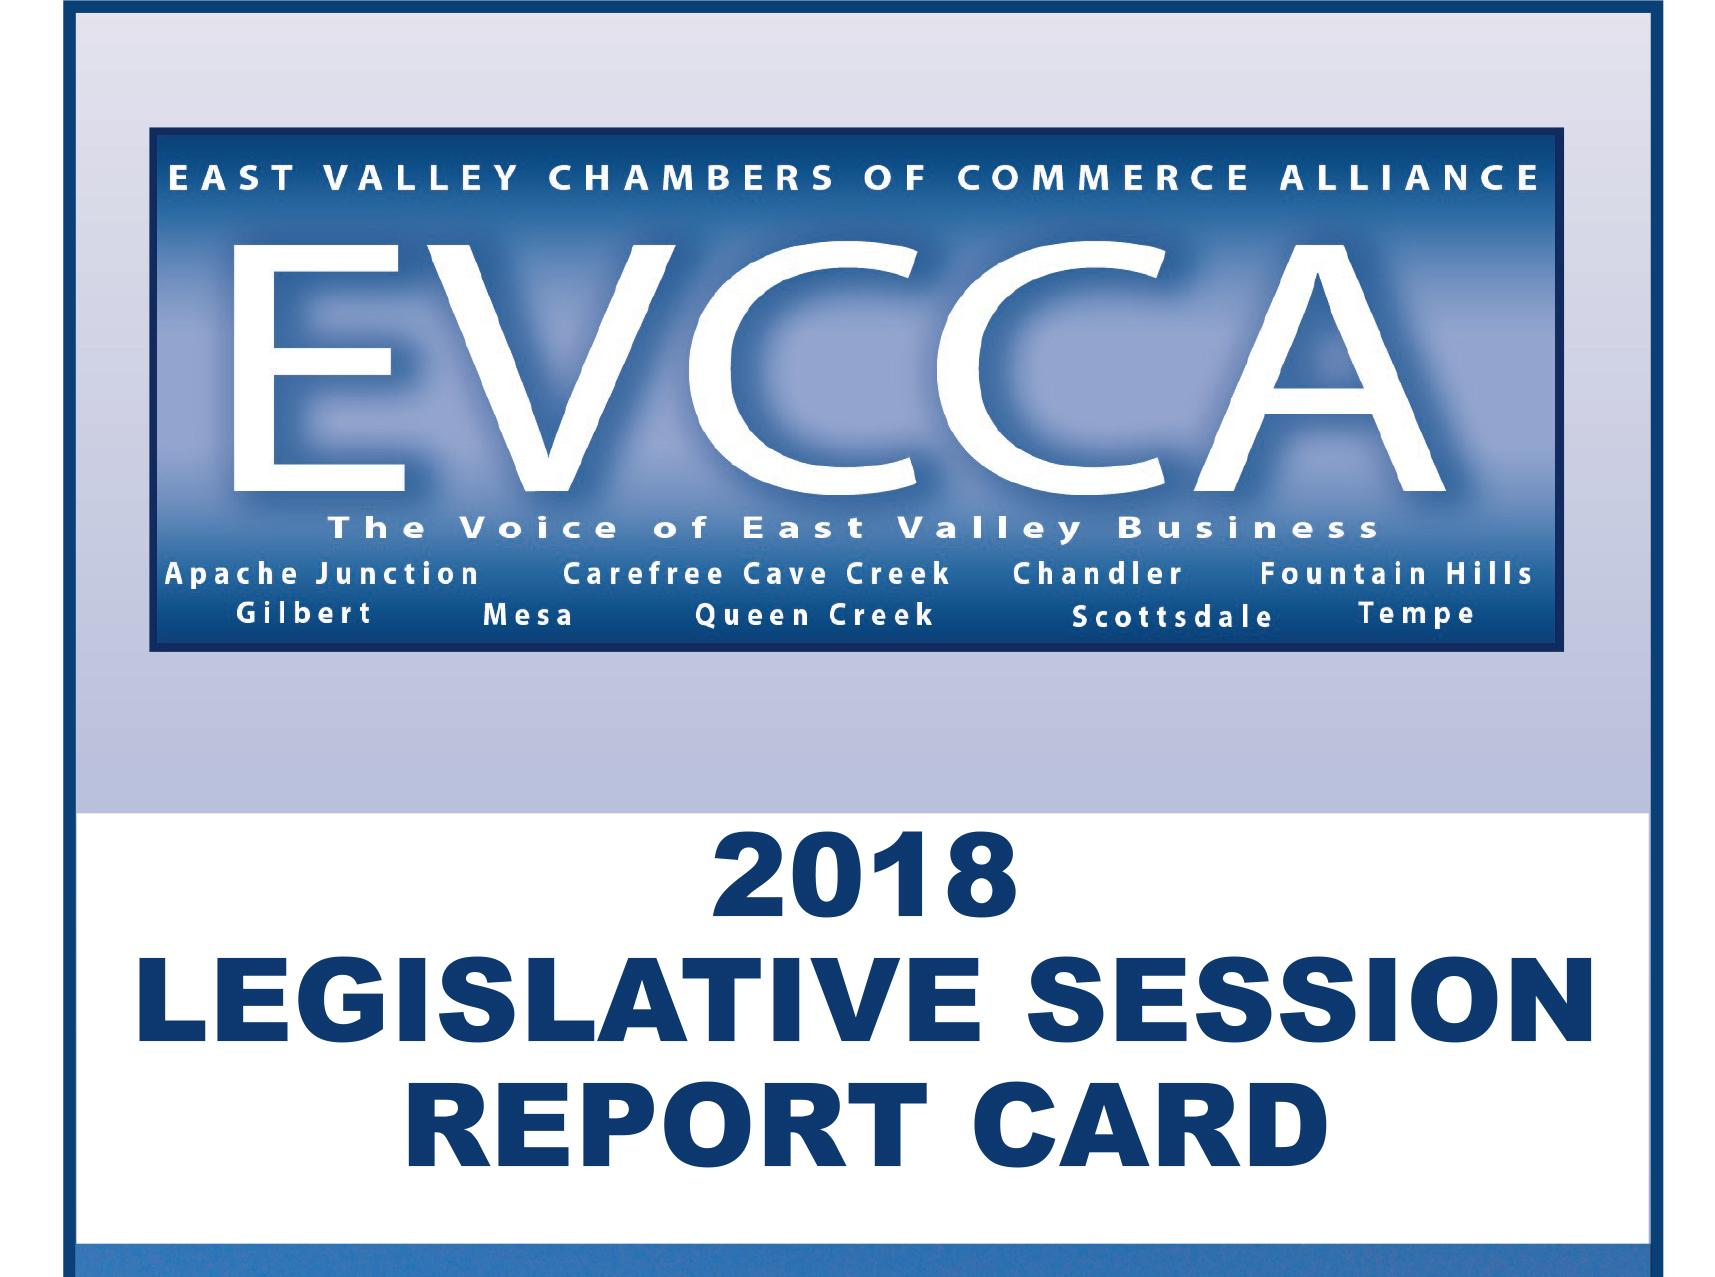 EVCCA legislative report card